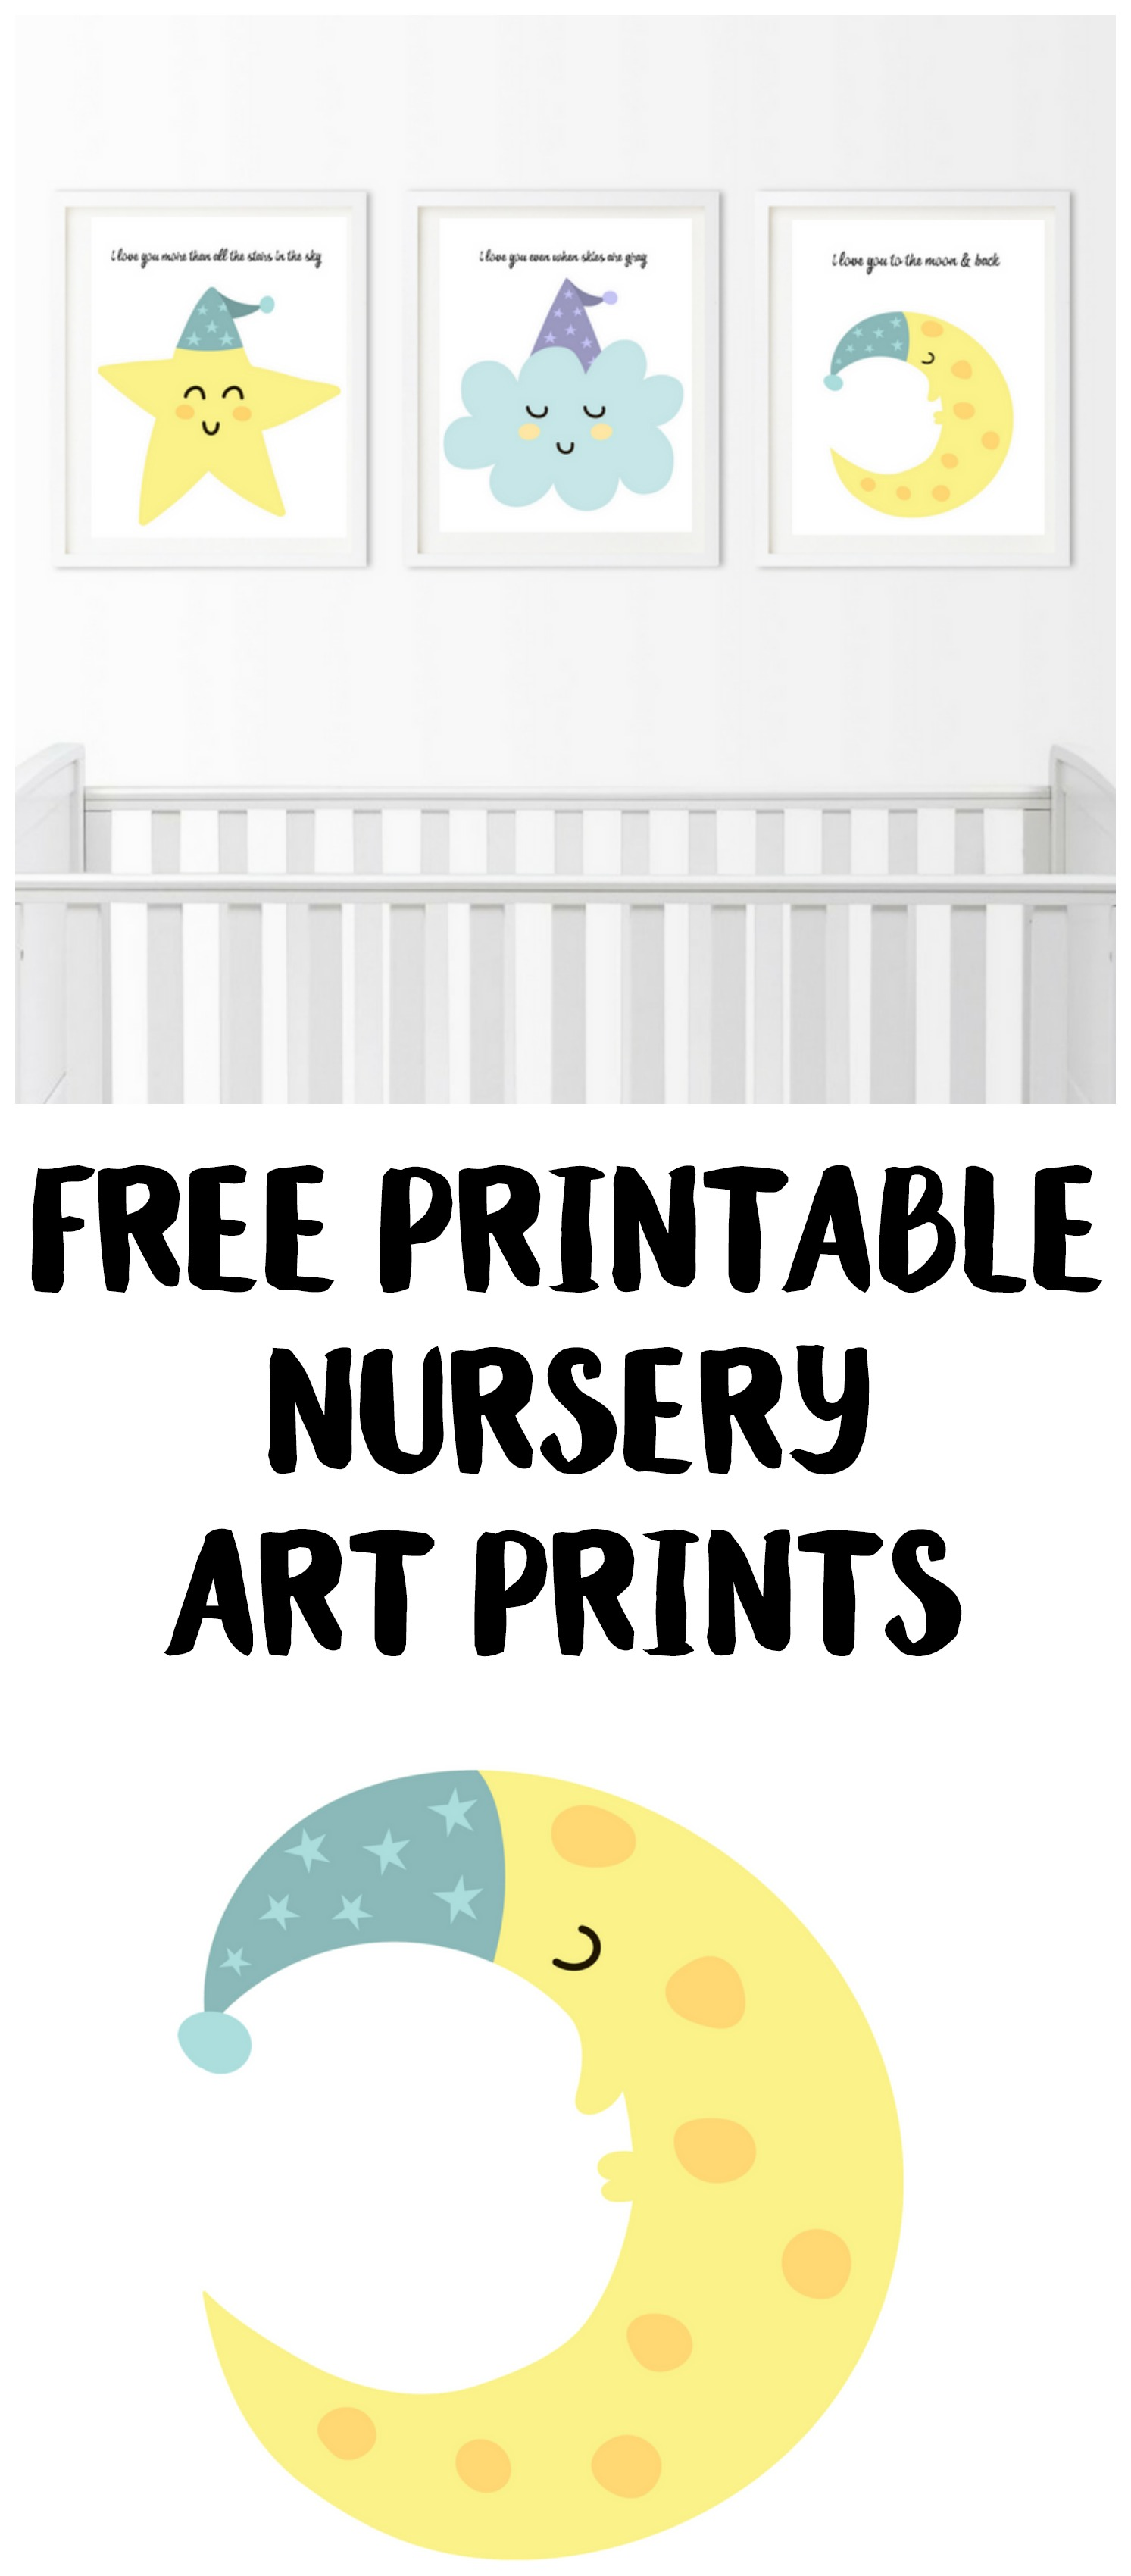 photo regarding Free Printable Nursery Art titled No cost Nursery Artwork Prints: I Enjoy By yourself In the direction of The Moon And Back again